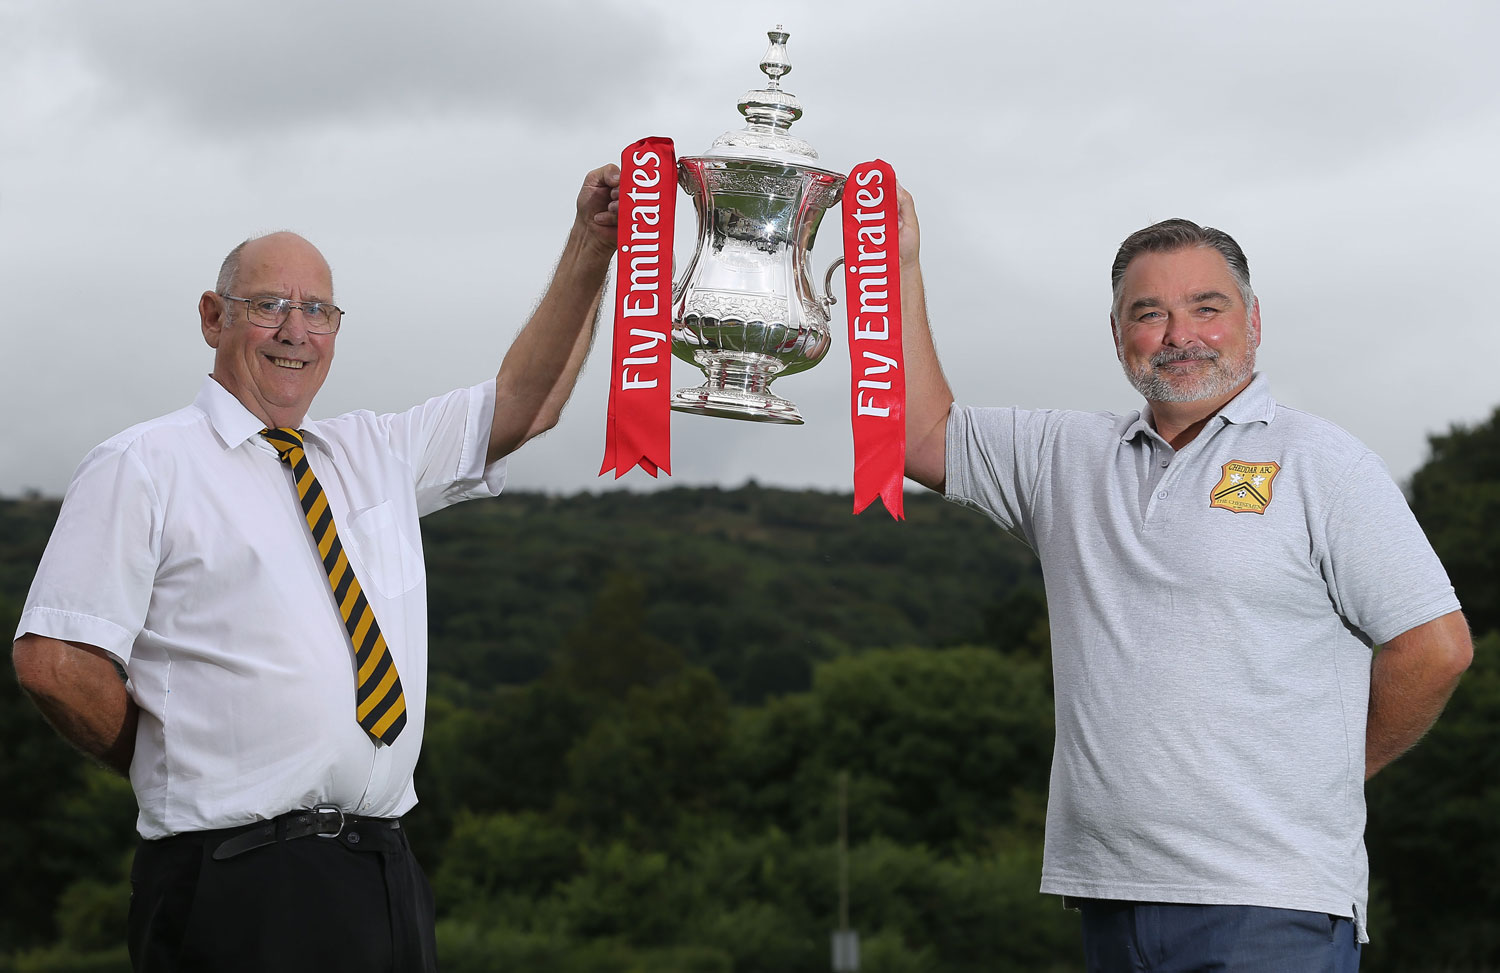 Cheddar AFC with FA Cup  LtoR Donald White (President) and Matt Postins (Chairman),        Cheddar AFC Double Prize Money Activity, Cheddar, UK - 22 Aug 2018  Photo: Martin Bennett for The FA